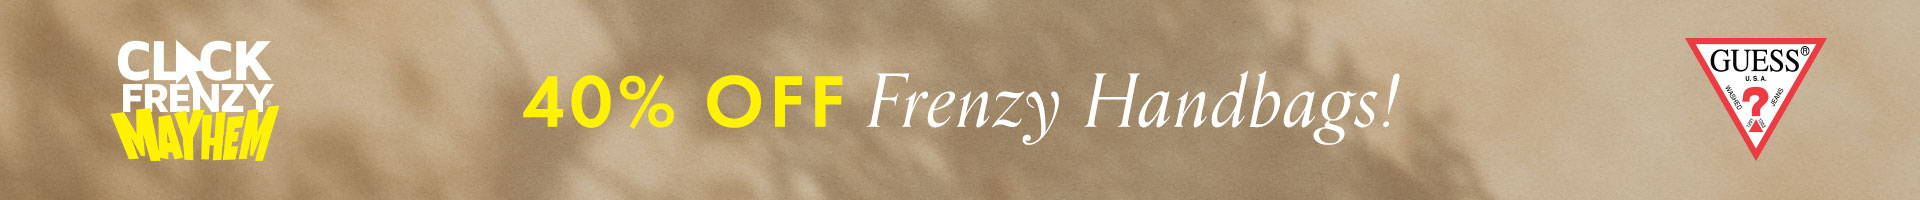 Guess Click Frenzy Sale Handbags 40% Off